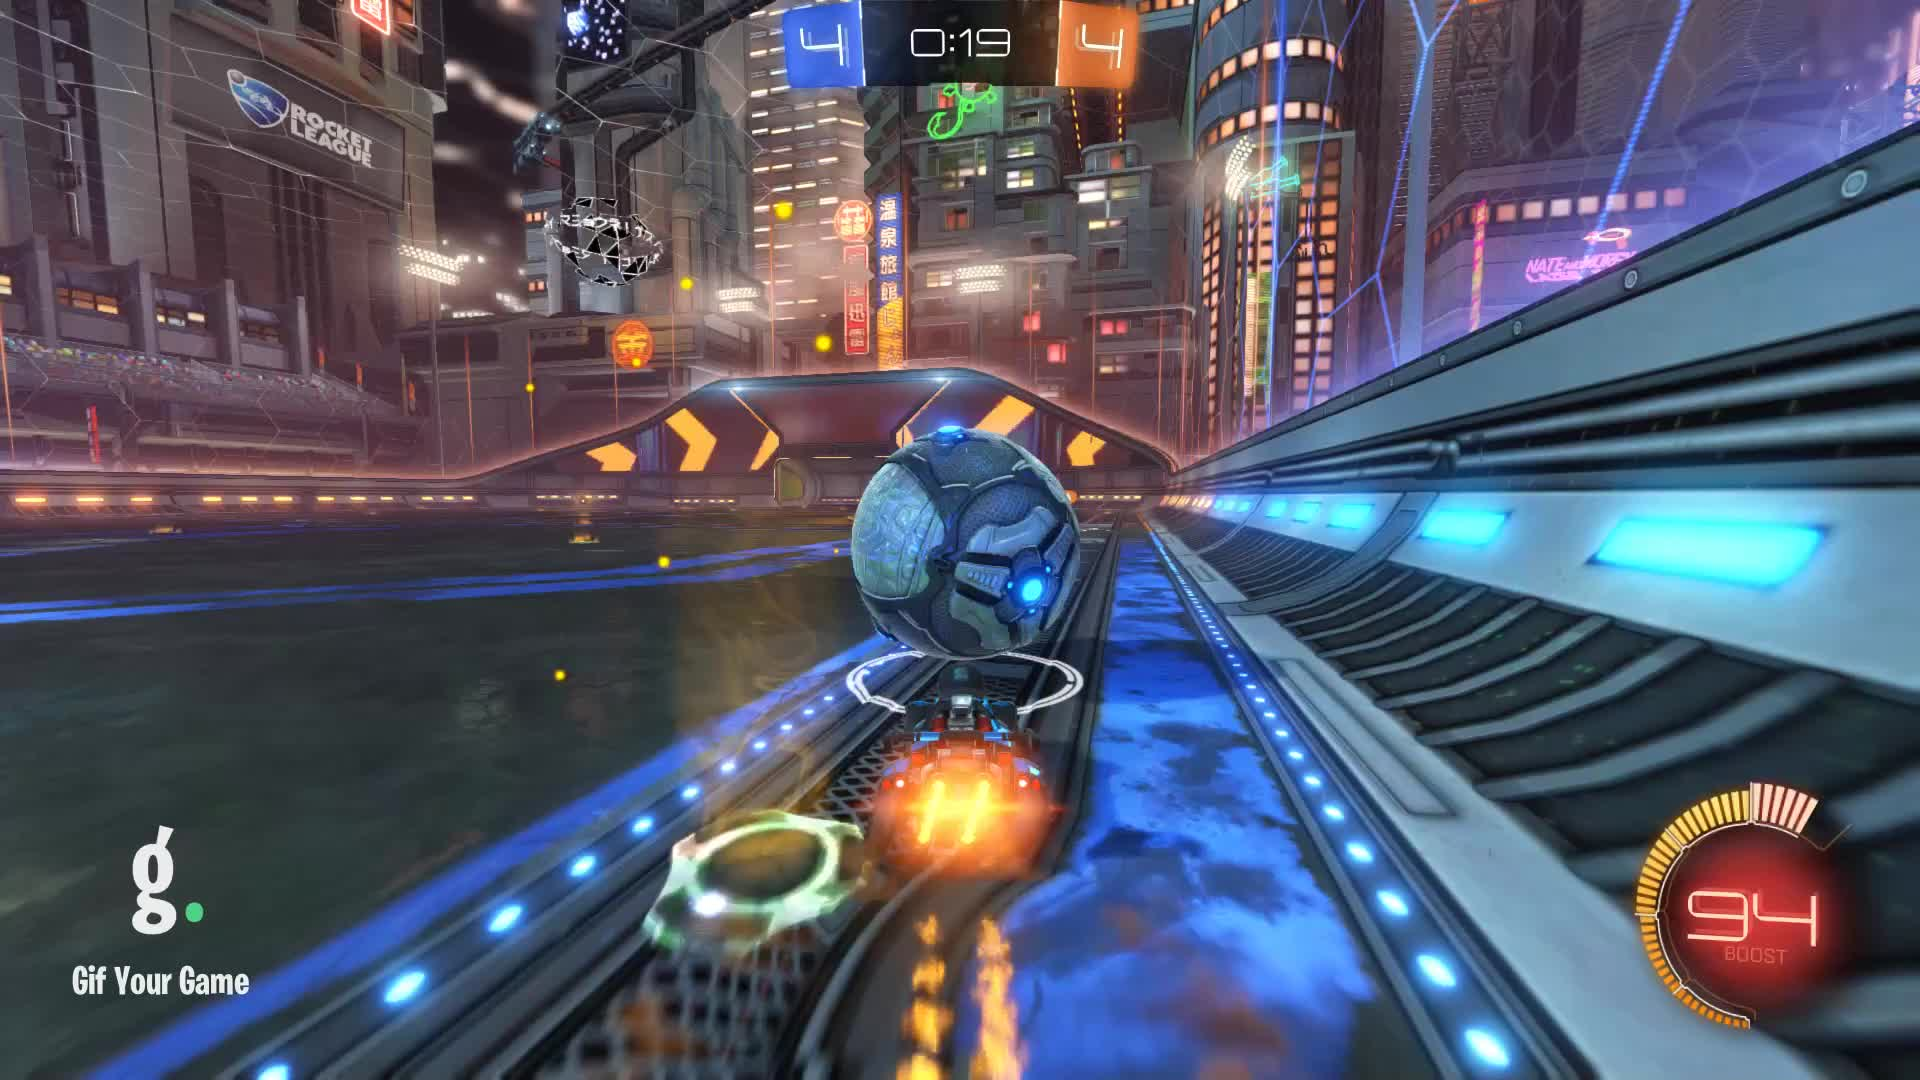 Gif Your Game, GifYourGame, Goal, Rocket League, RocketLeague, reGGie™, ⏱️ Goal 9: reGGie™ GIFs